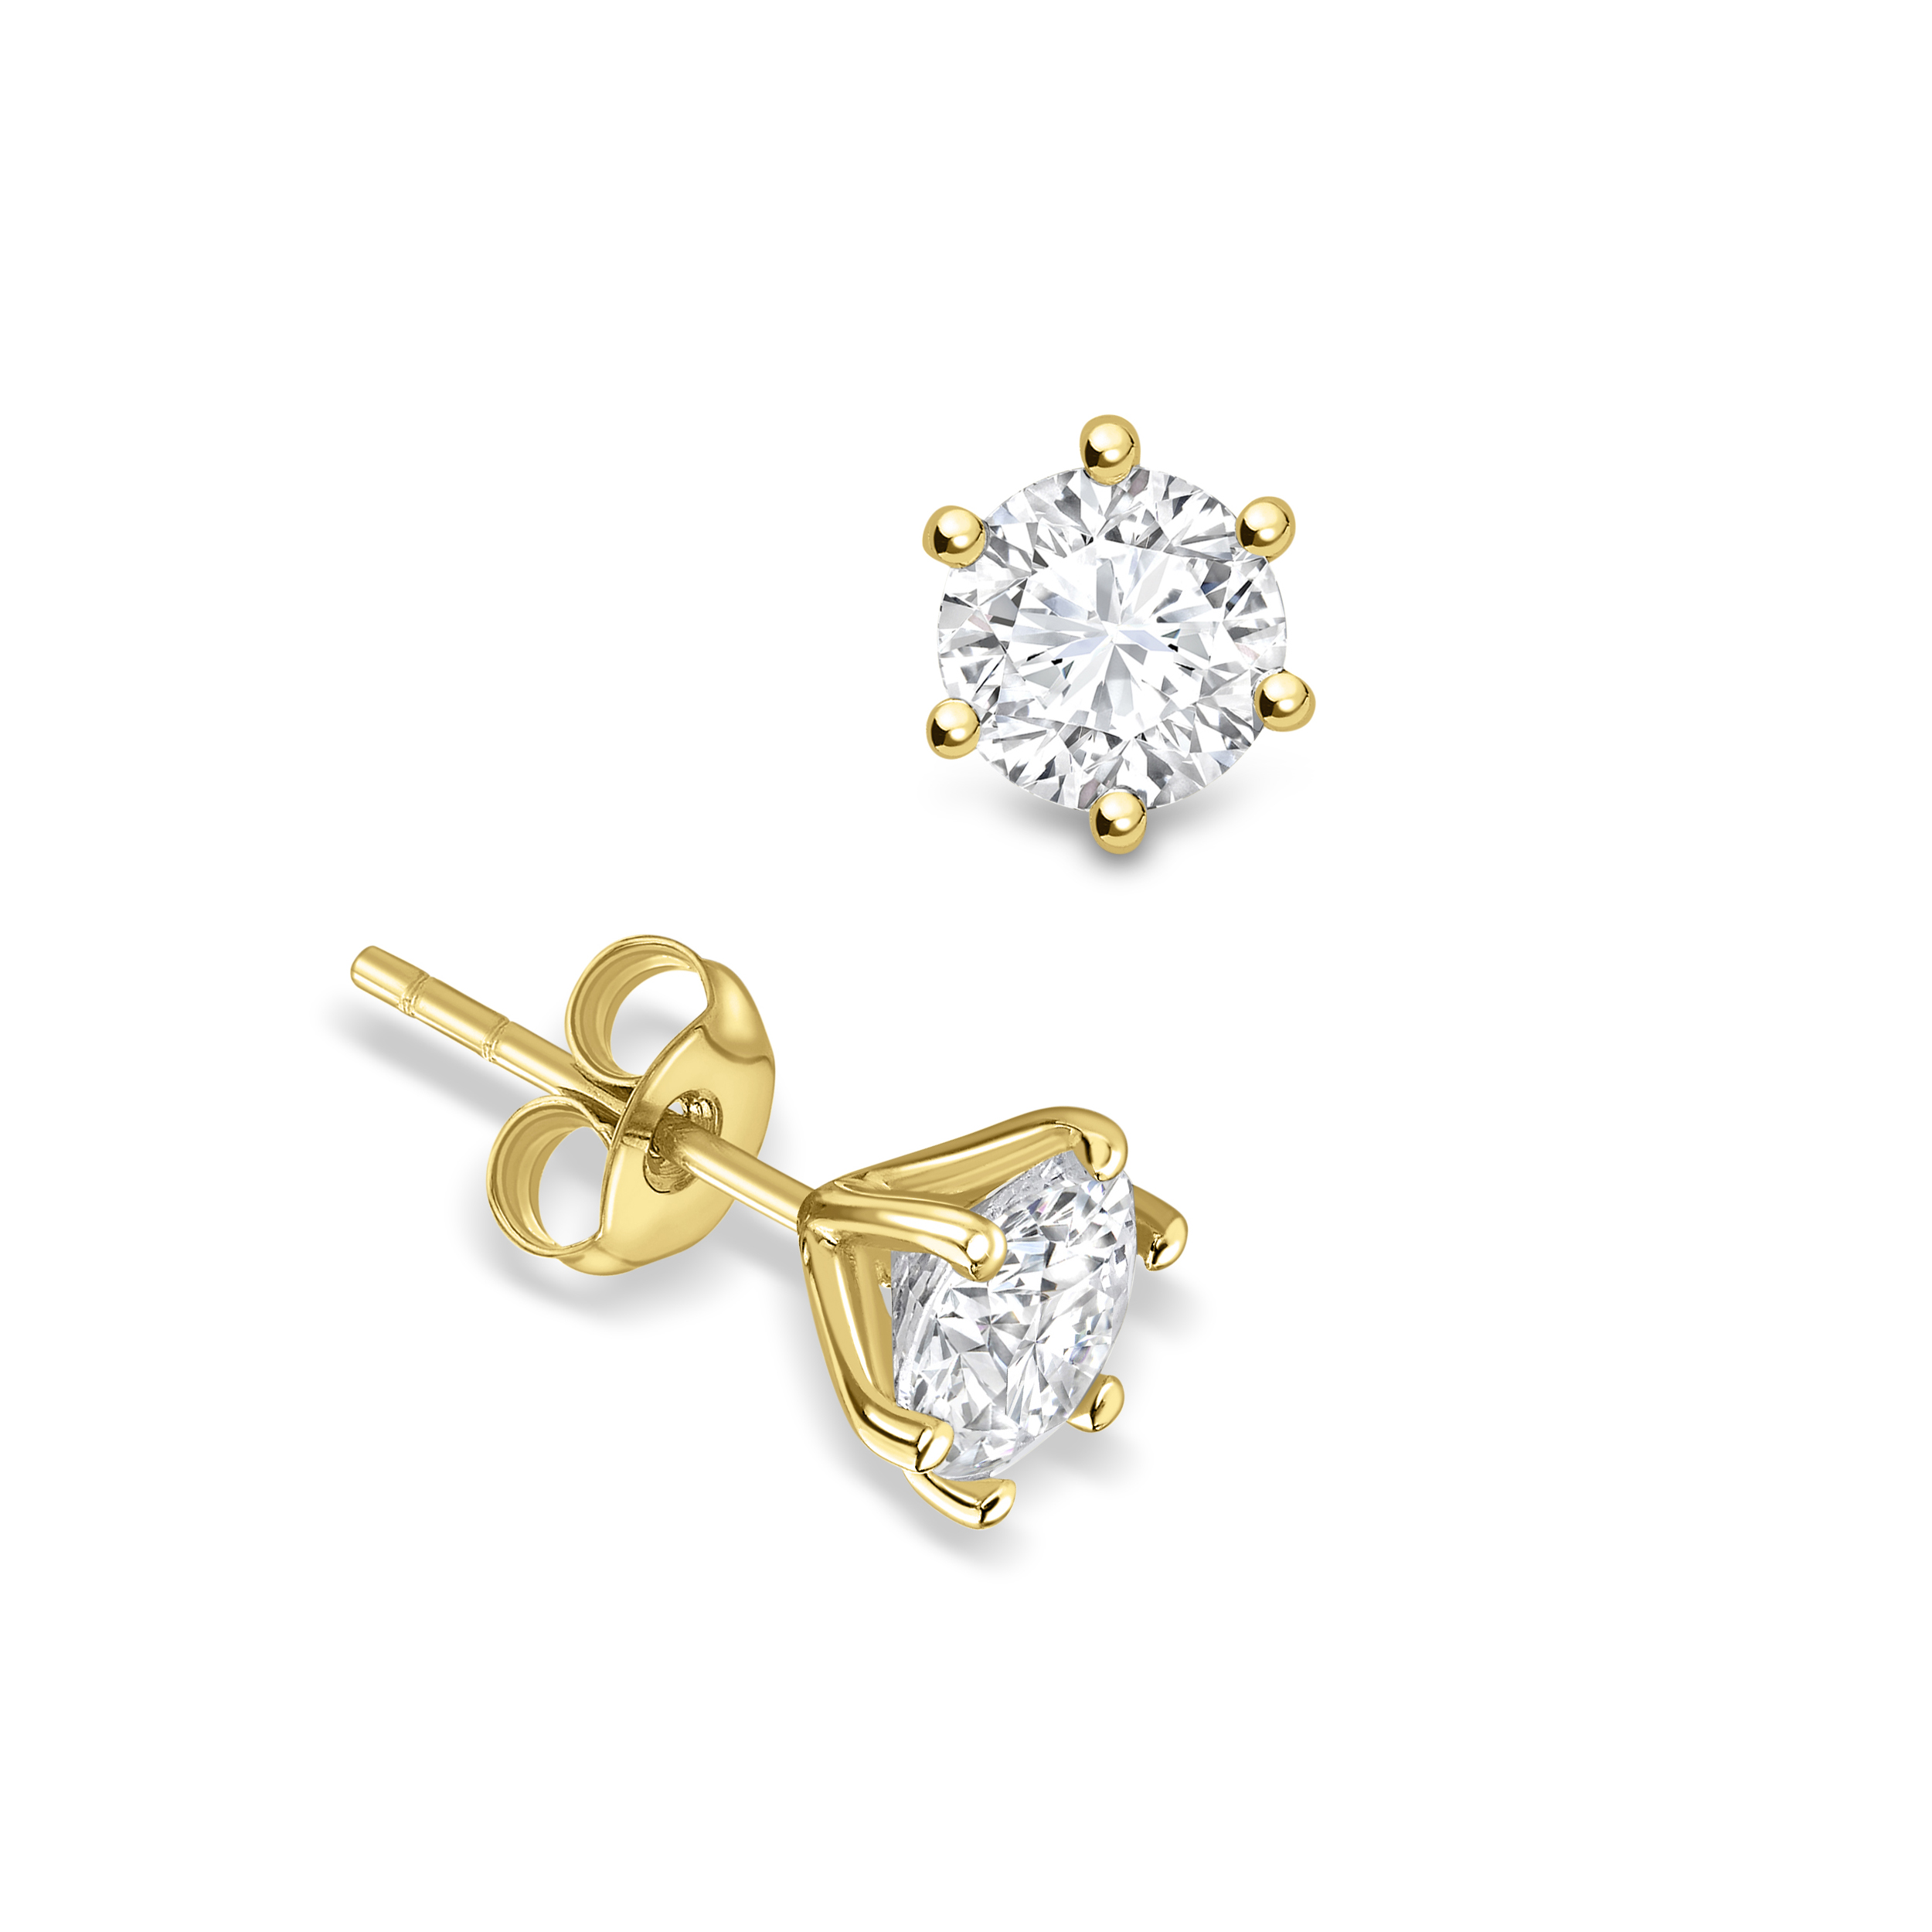 6 Open Prongs Round Shape Stud Diamond Earrings